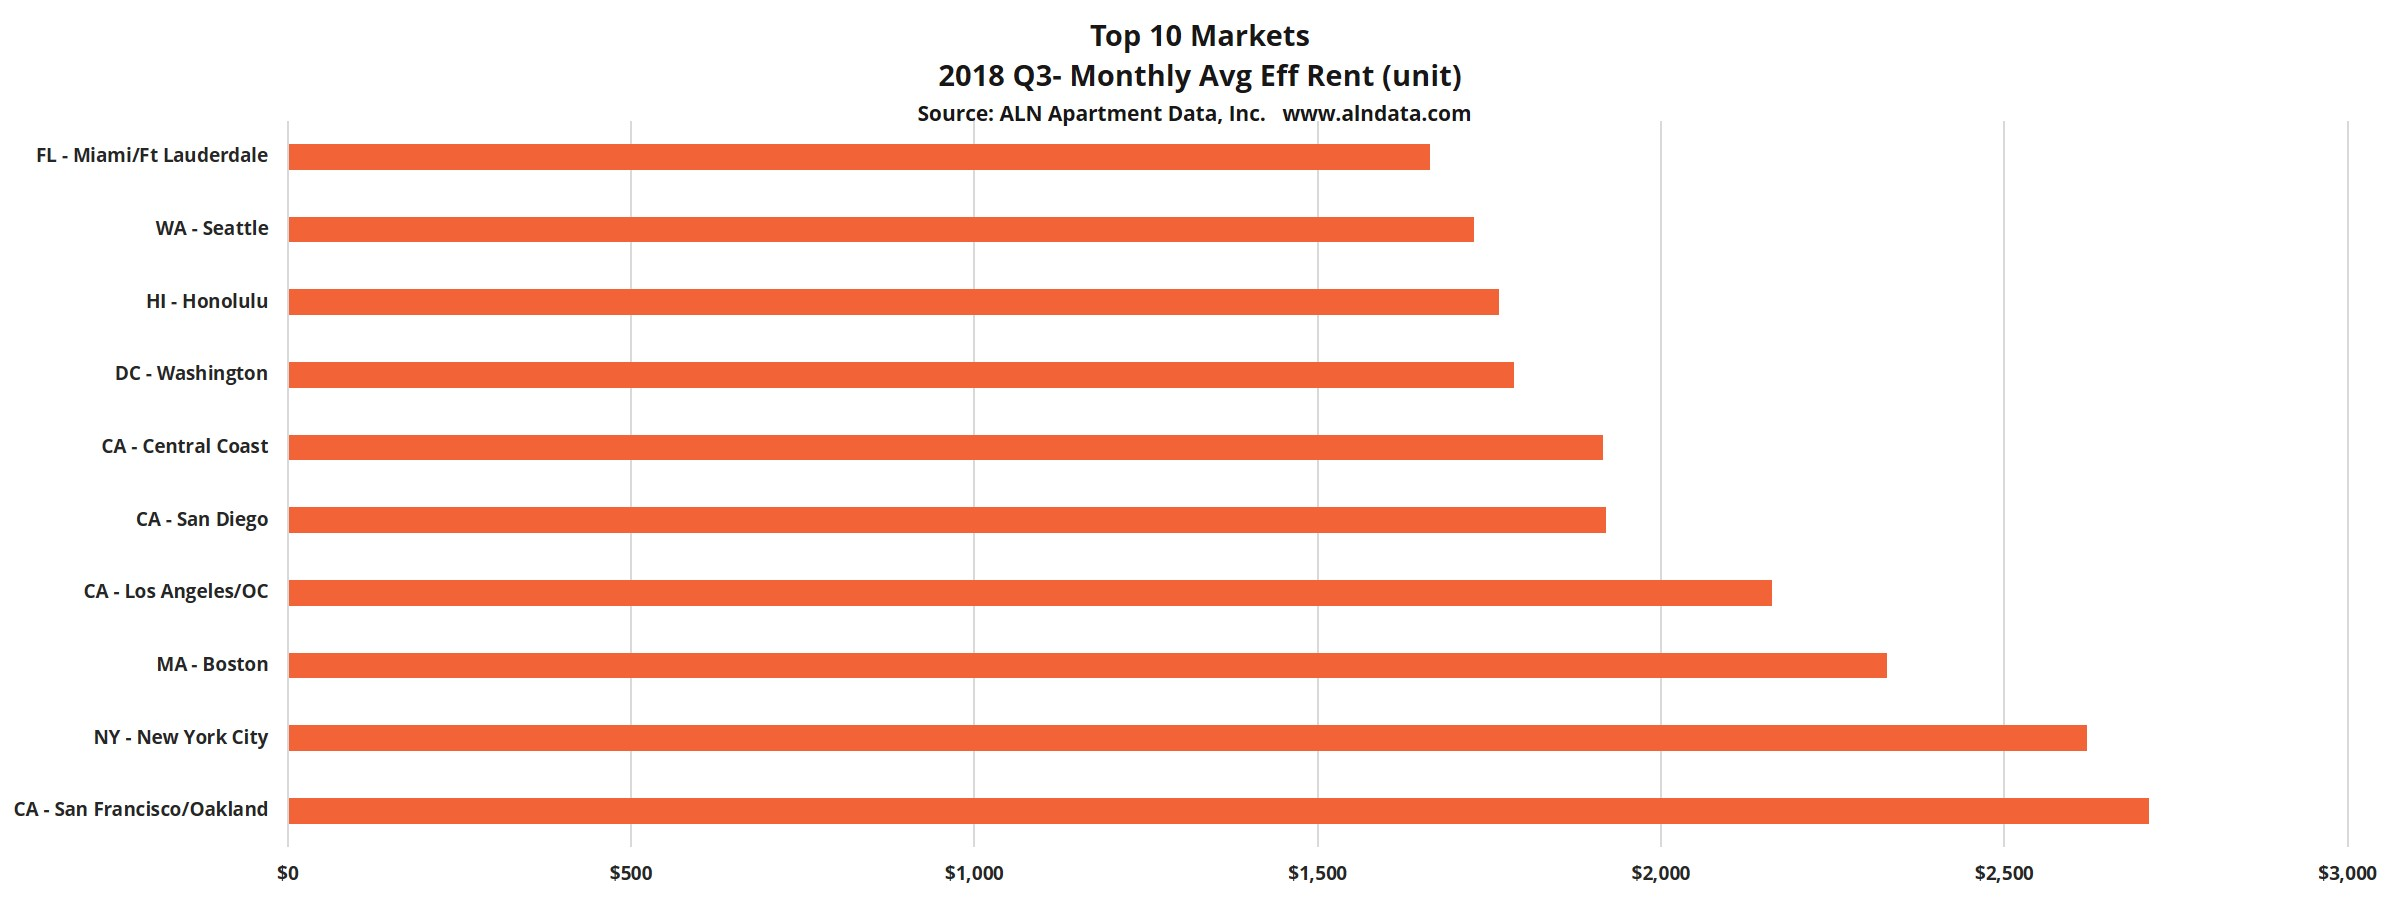 Top 10 Markets 2018 Quarter 3- Monthly Avg Eff Rent (unit)